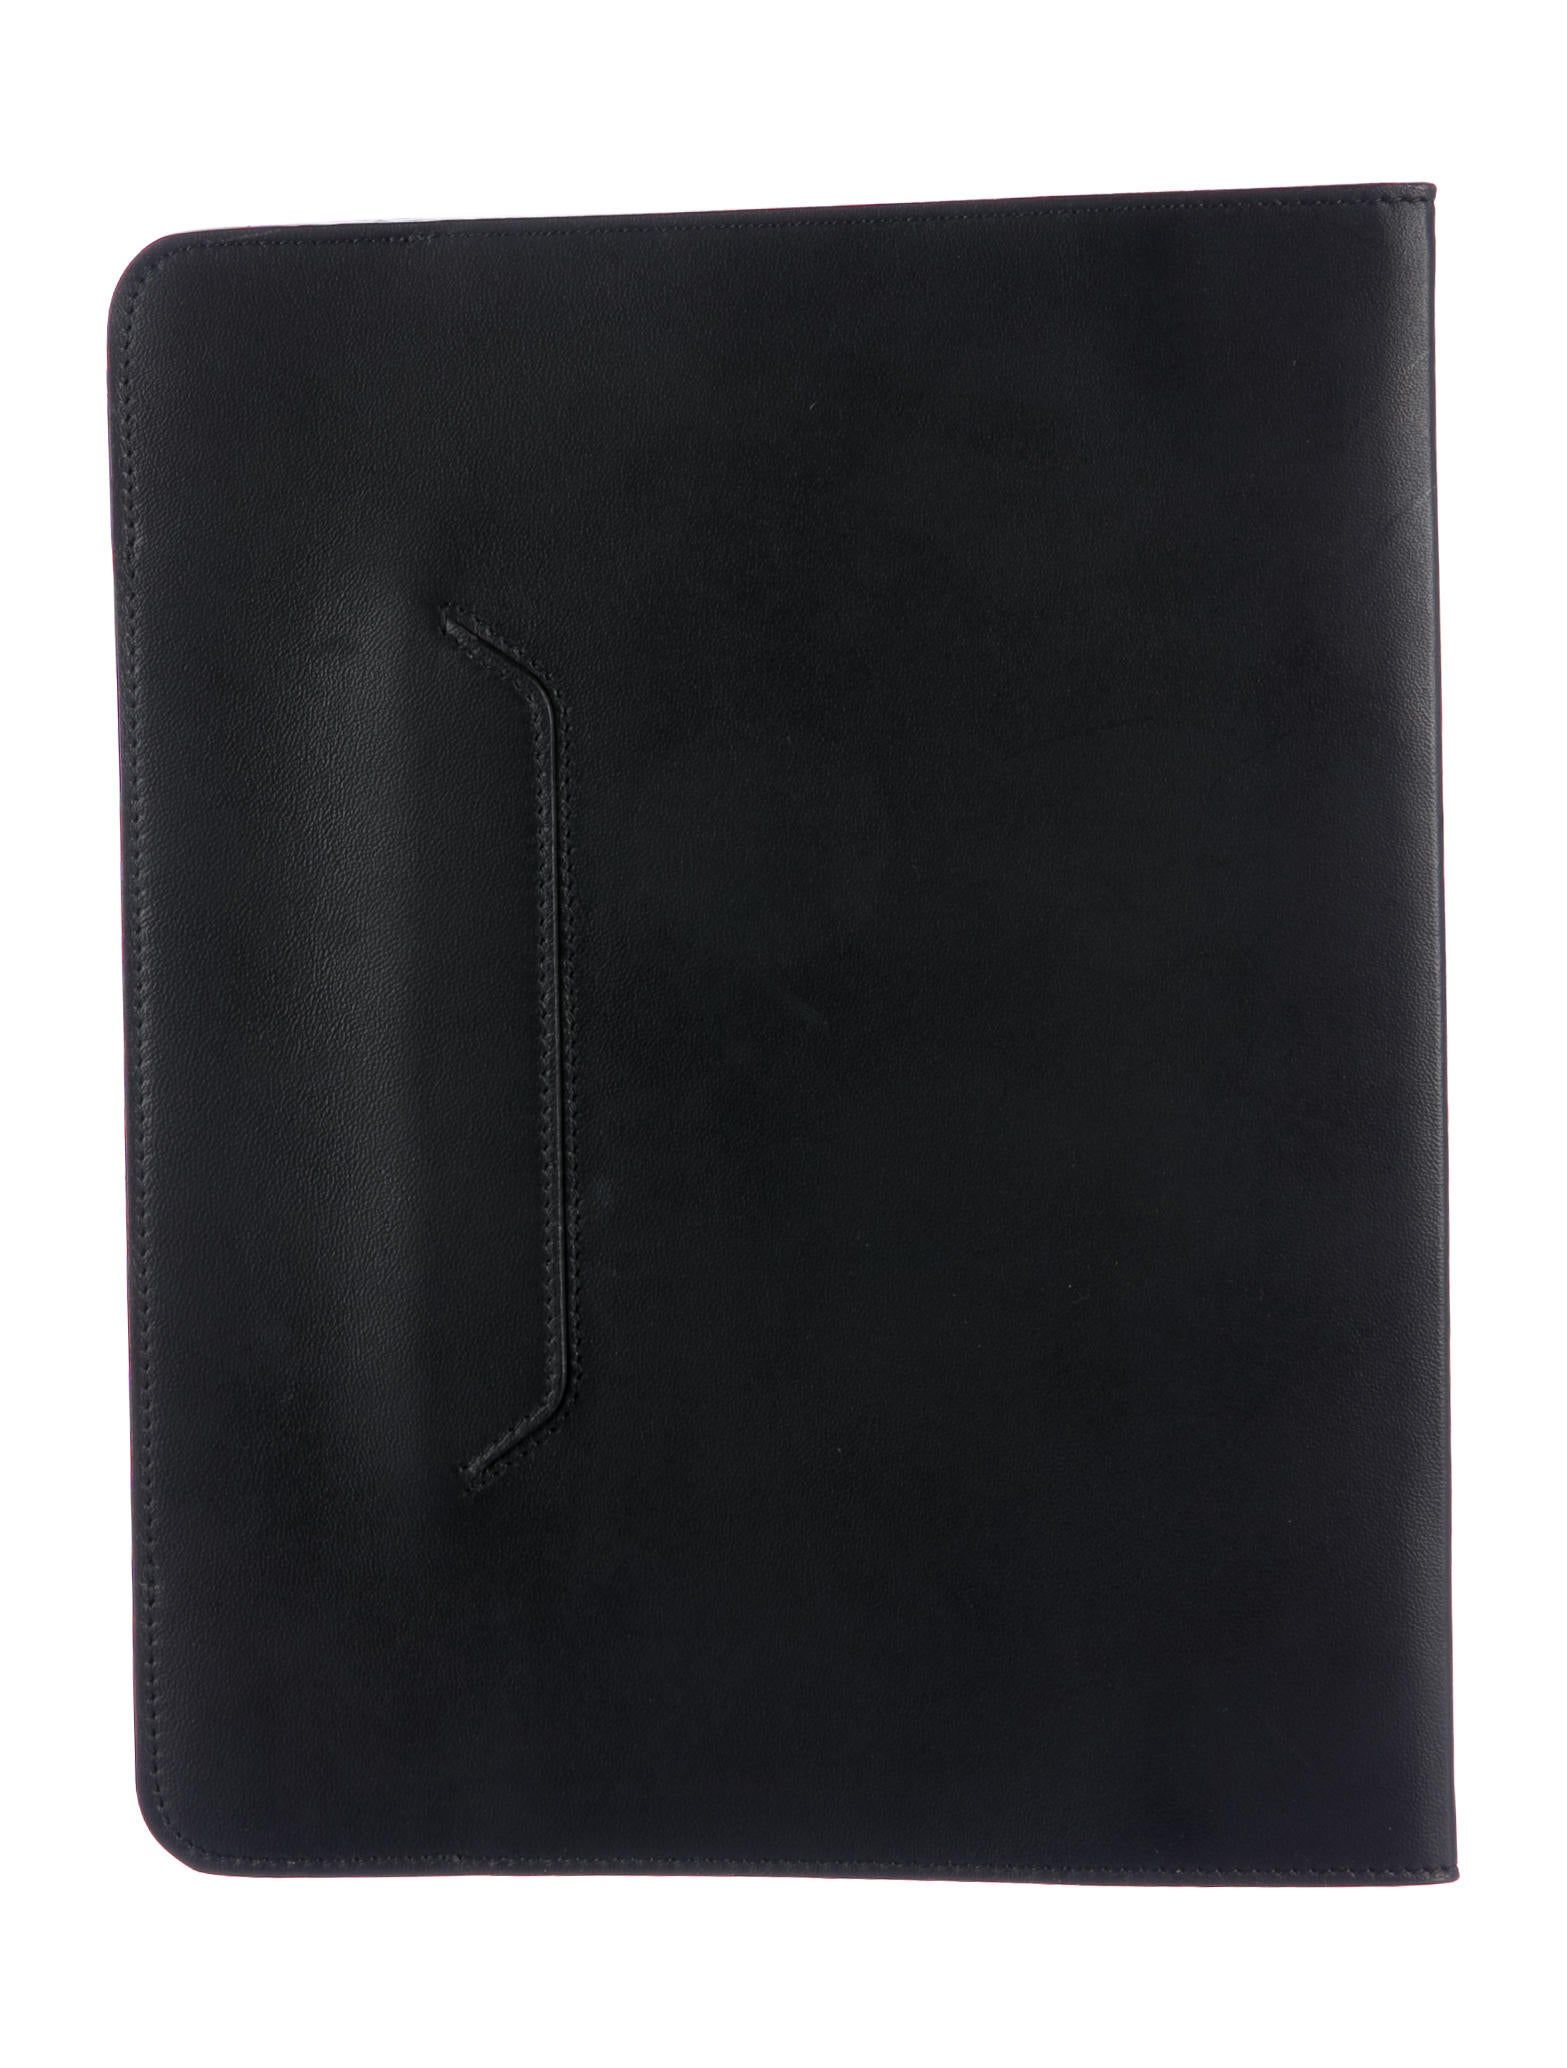 Bottega Veneta Intrecciato Leather Ipad Cover Technology